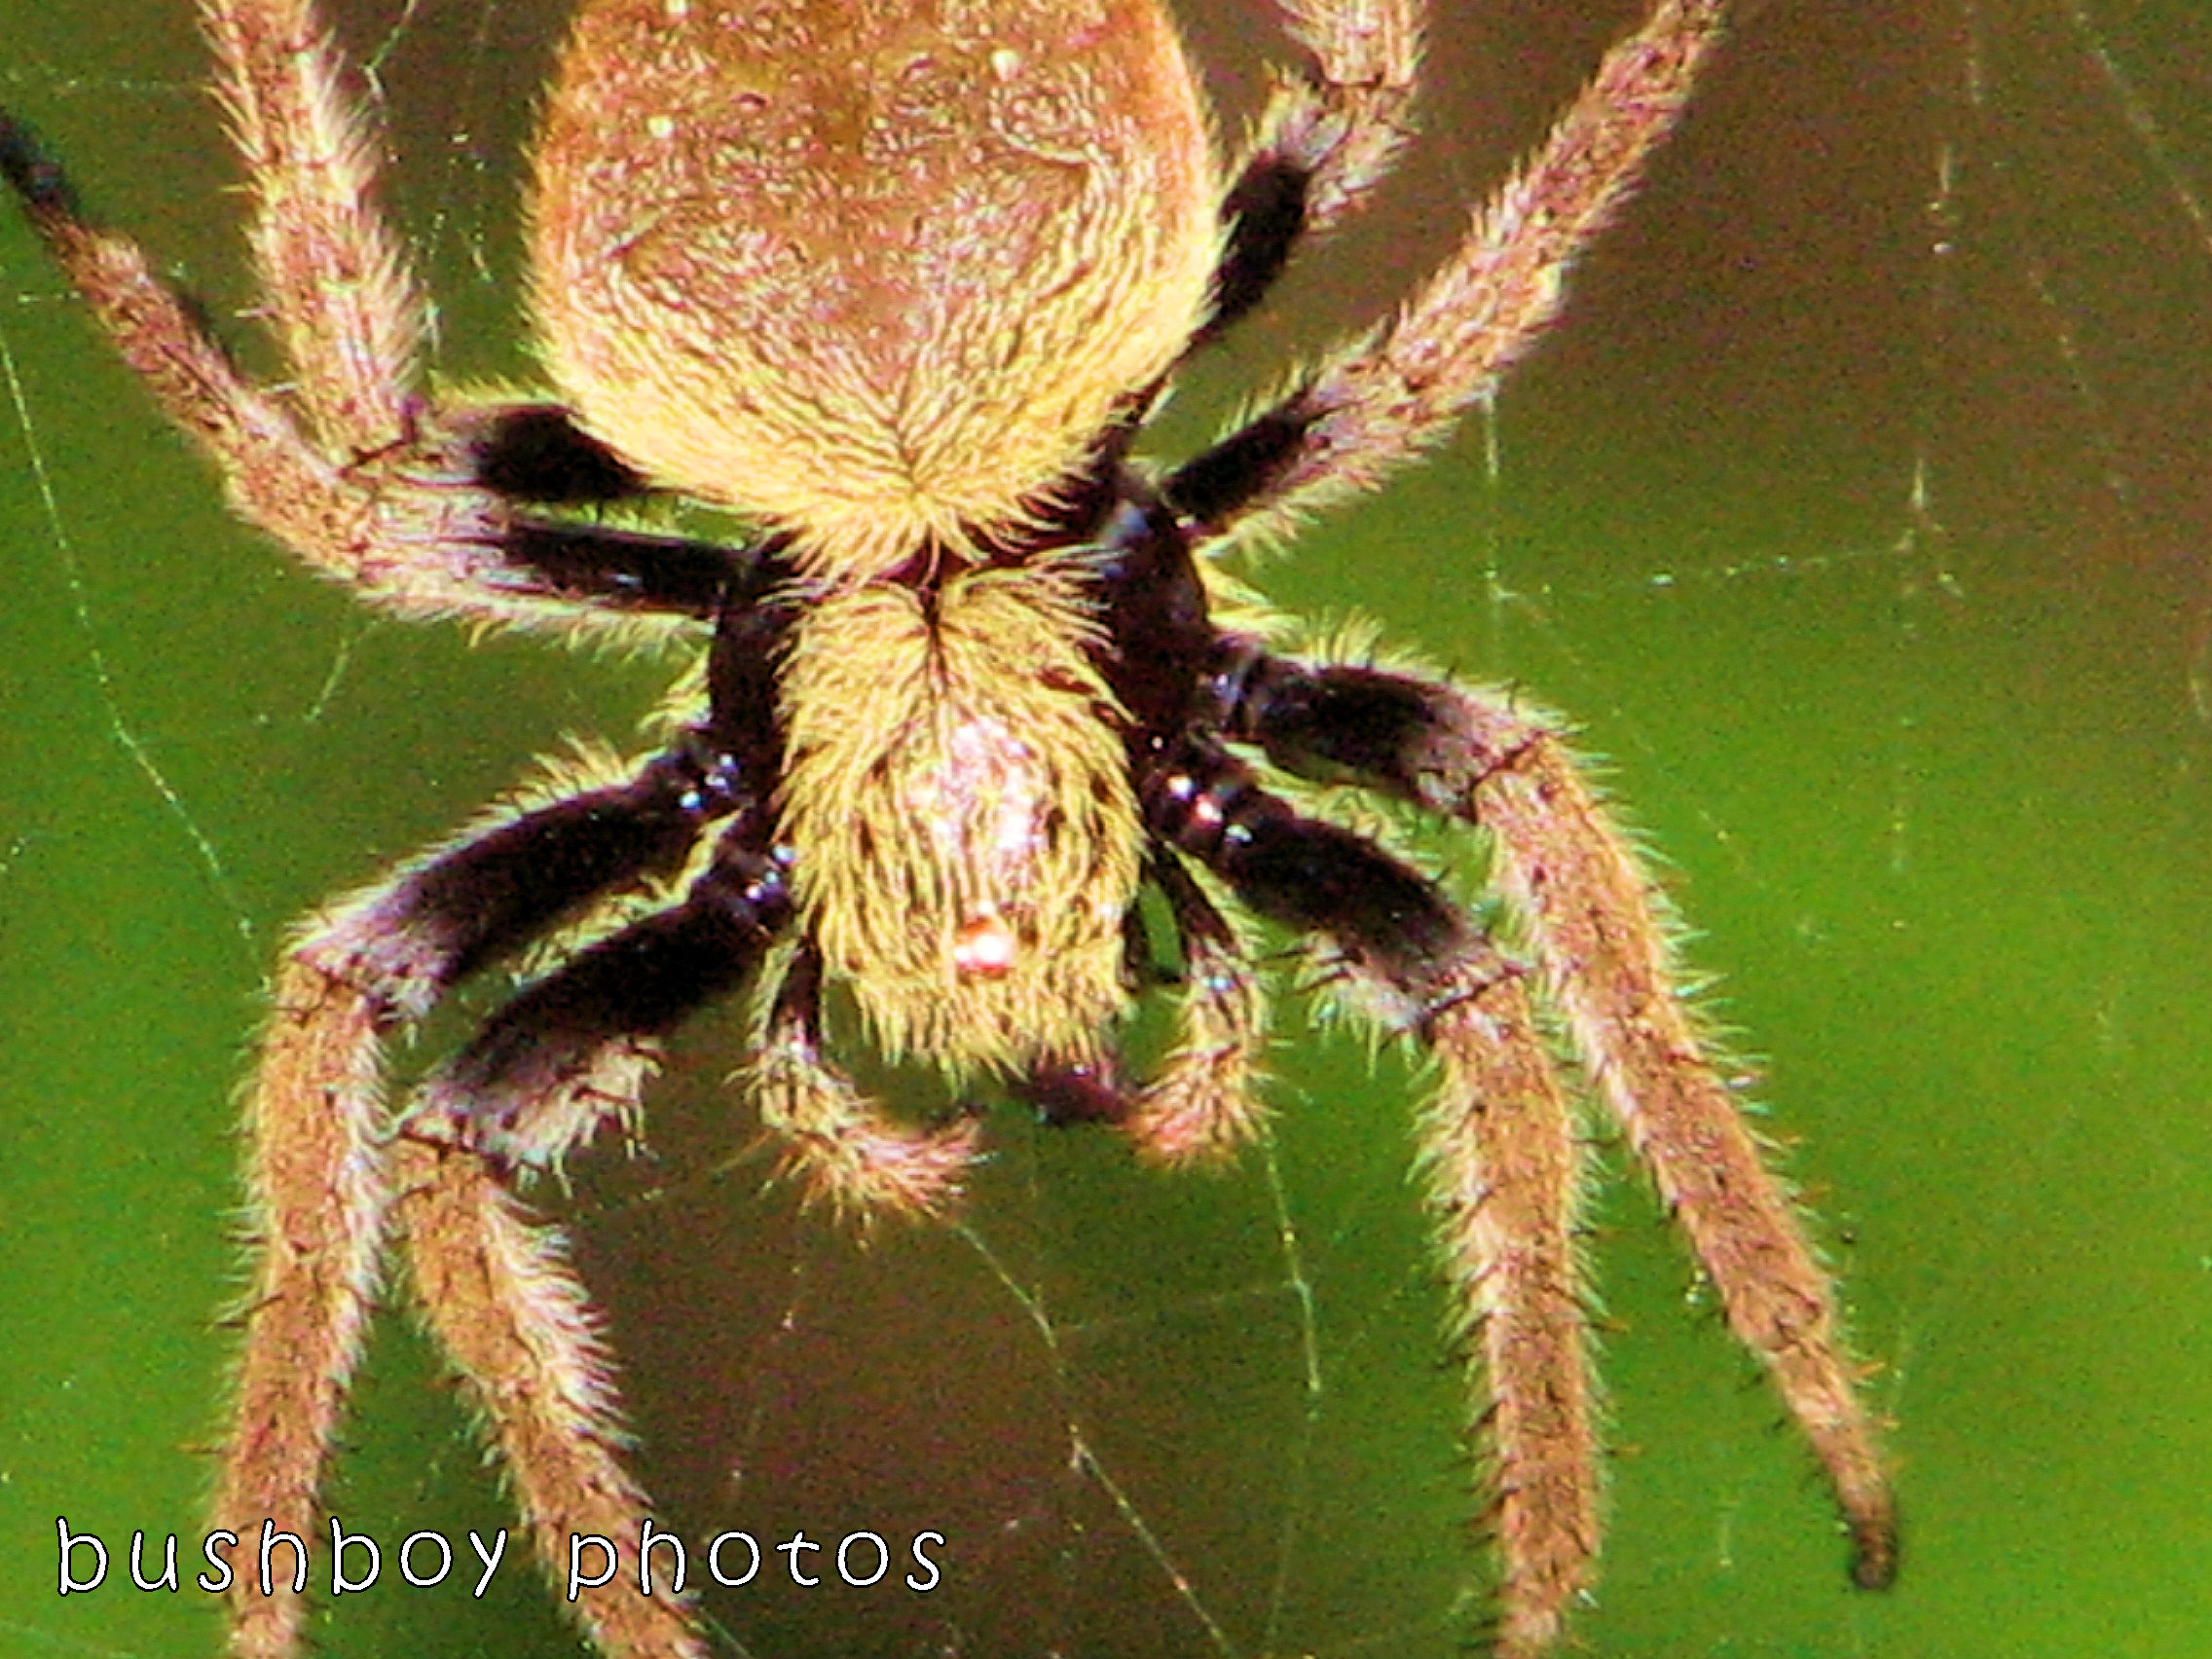 180105_blog challenge_auricomous_spider